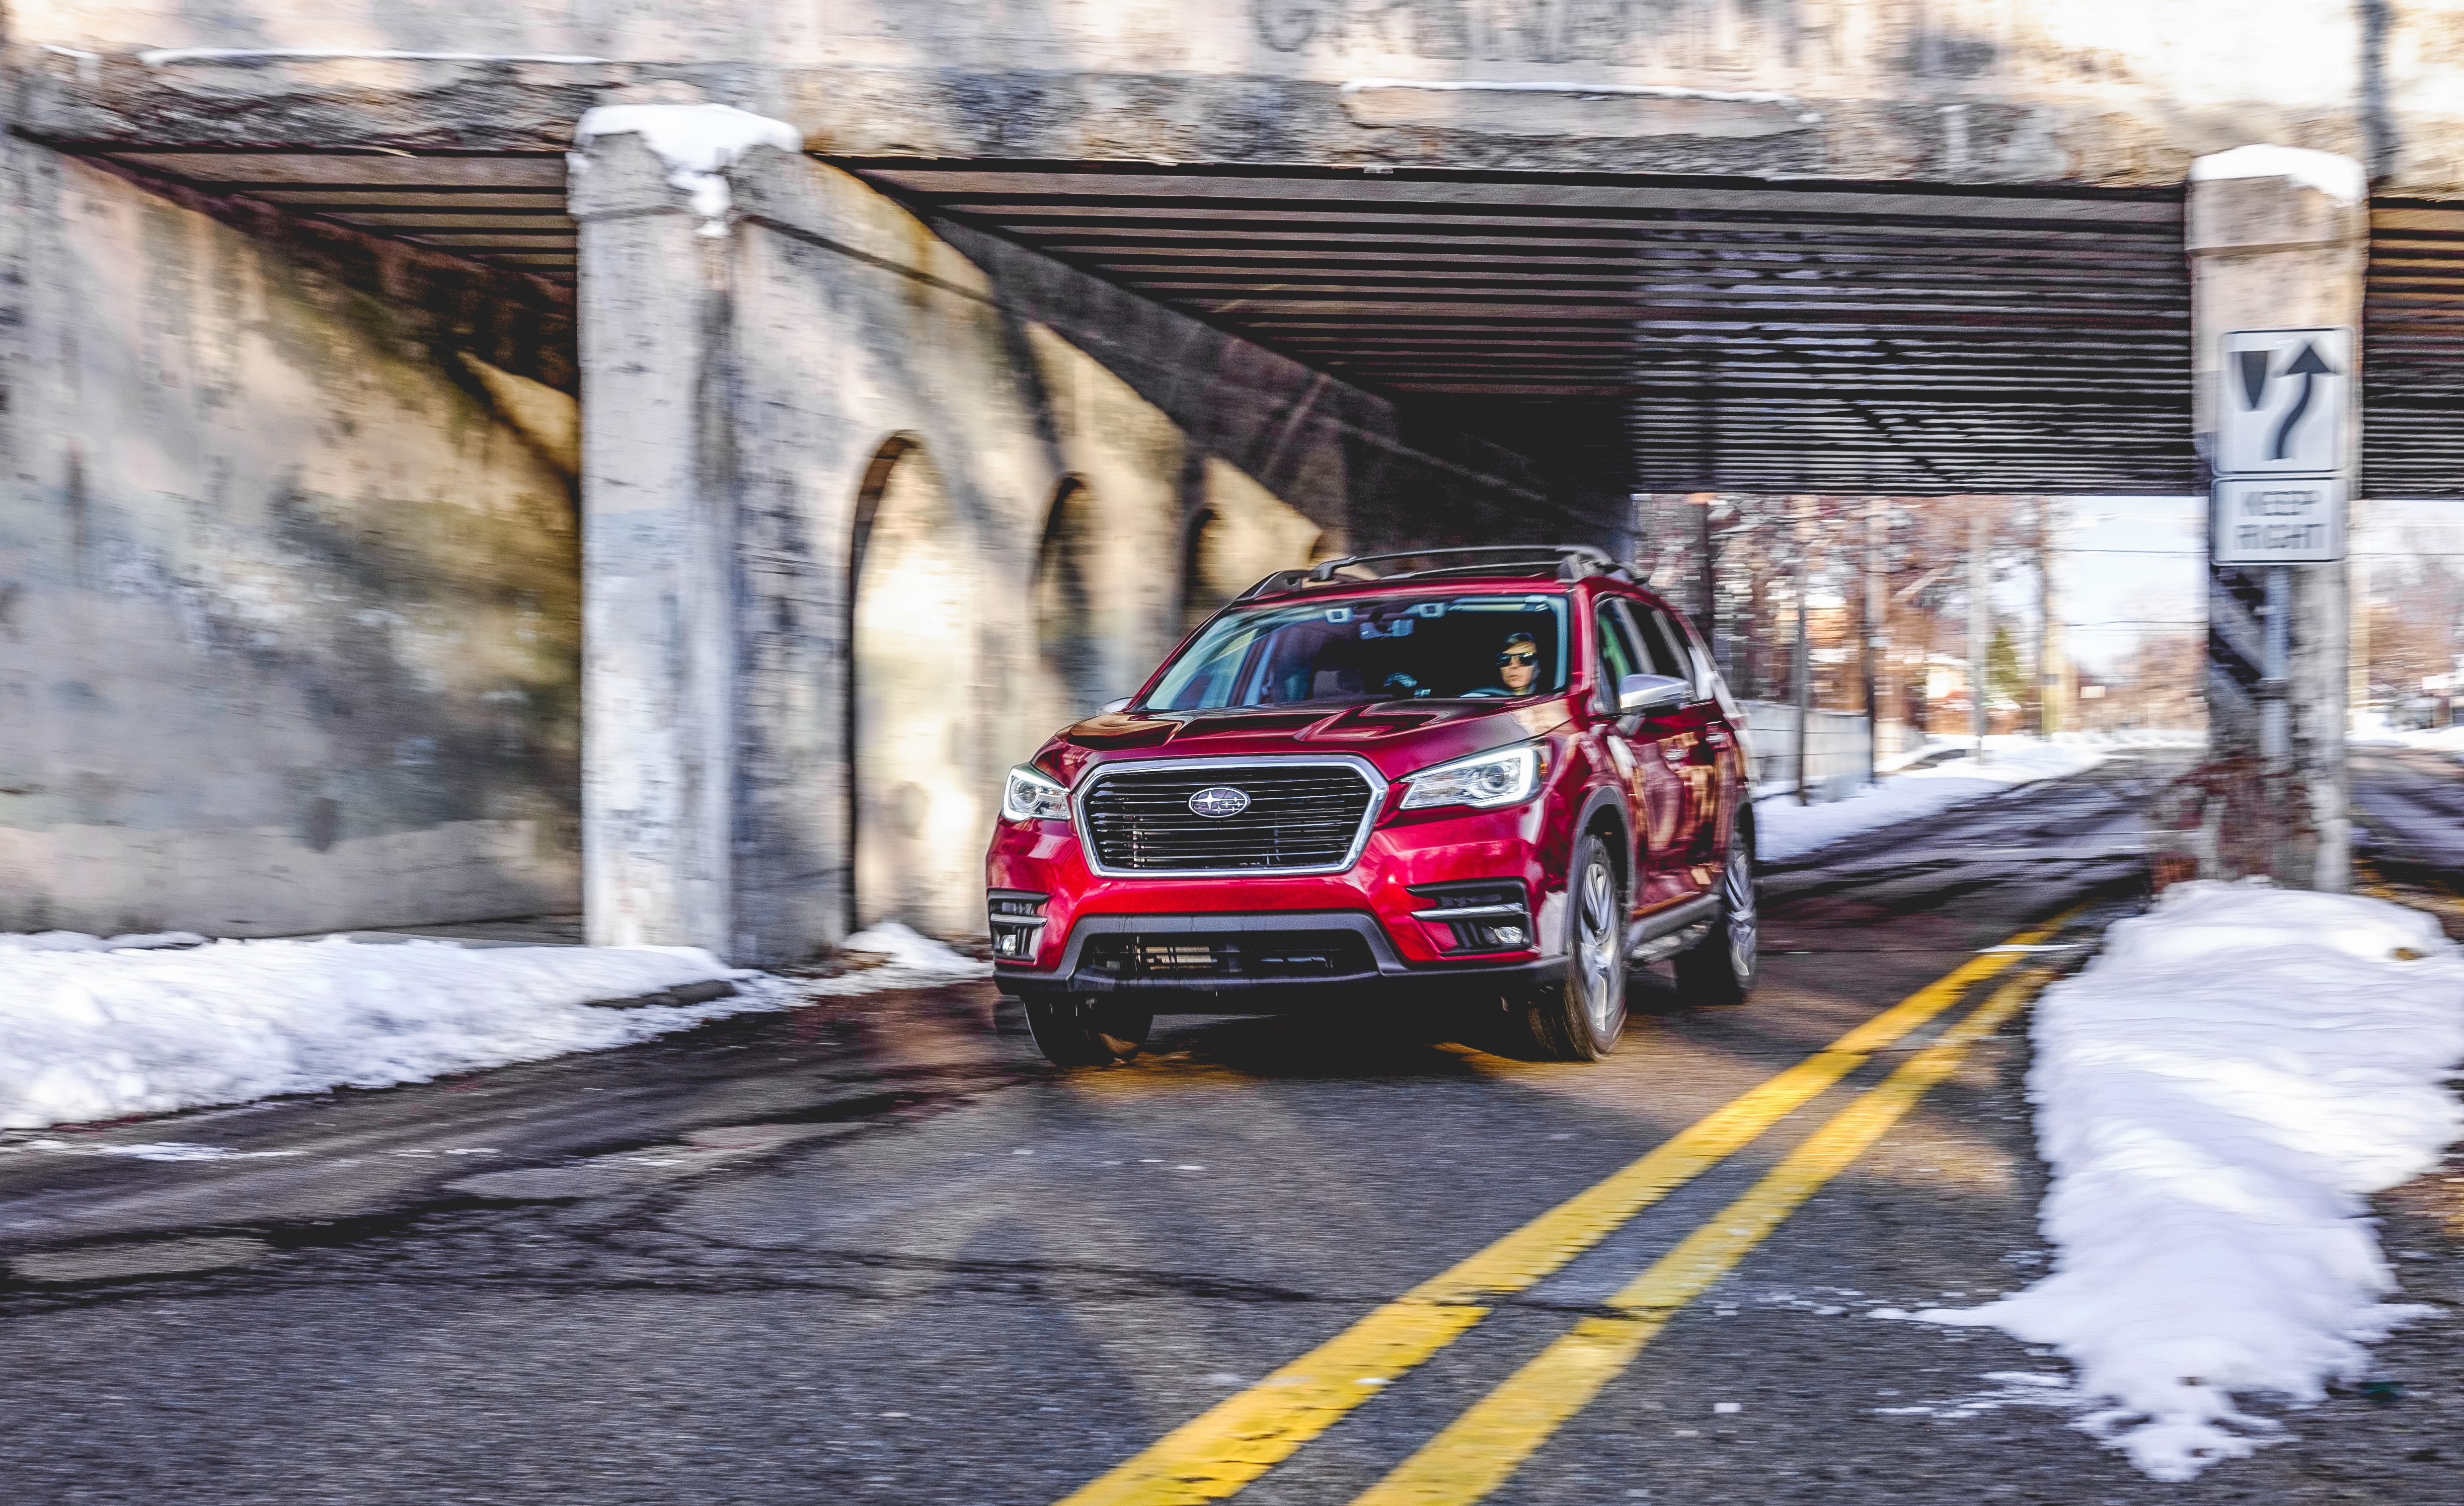 How Reliable Is the 2019 Subaru Ascent?